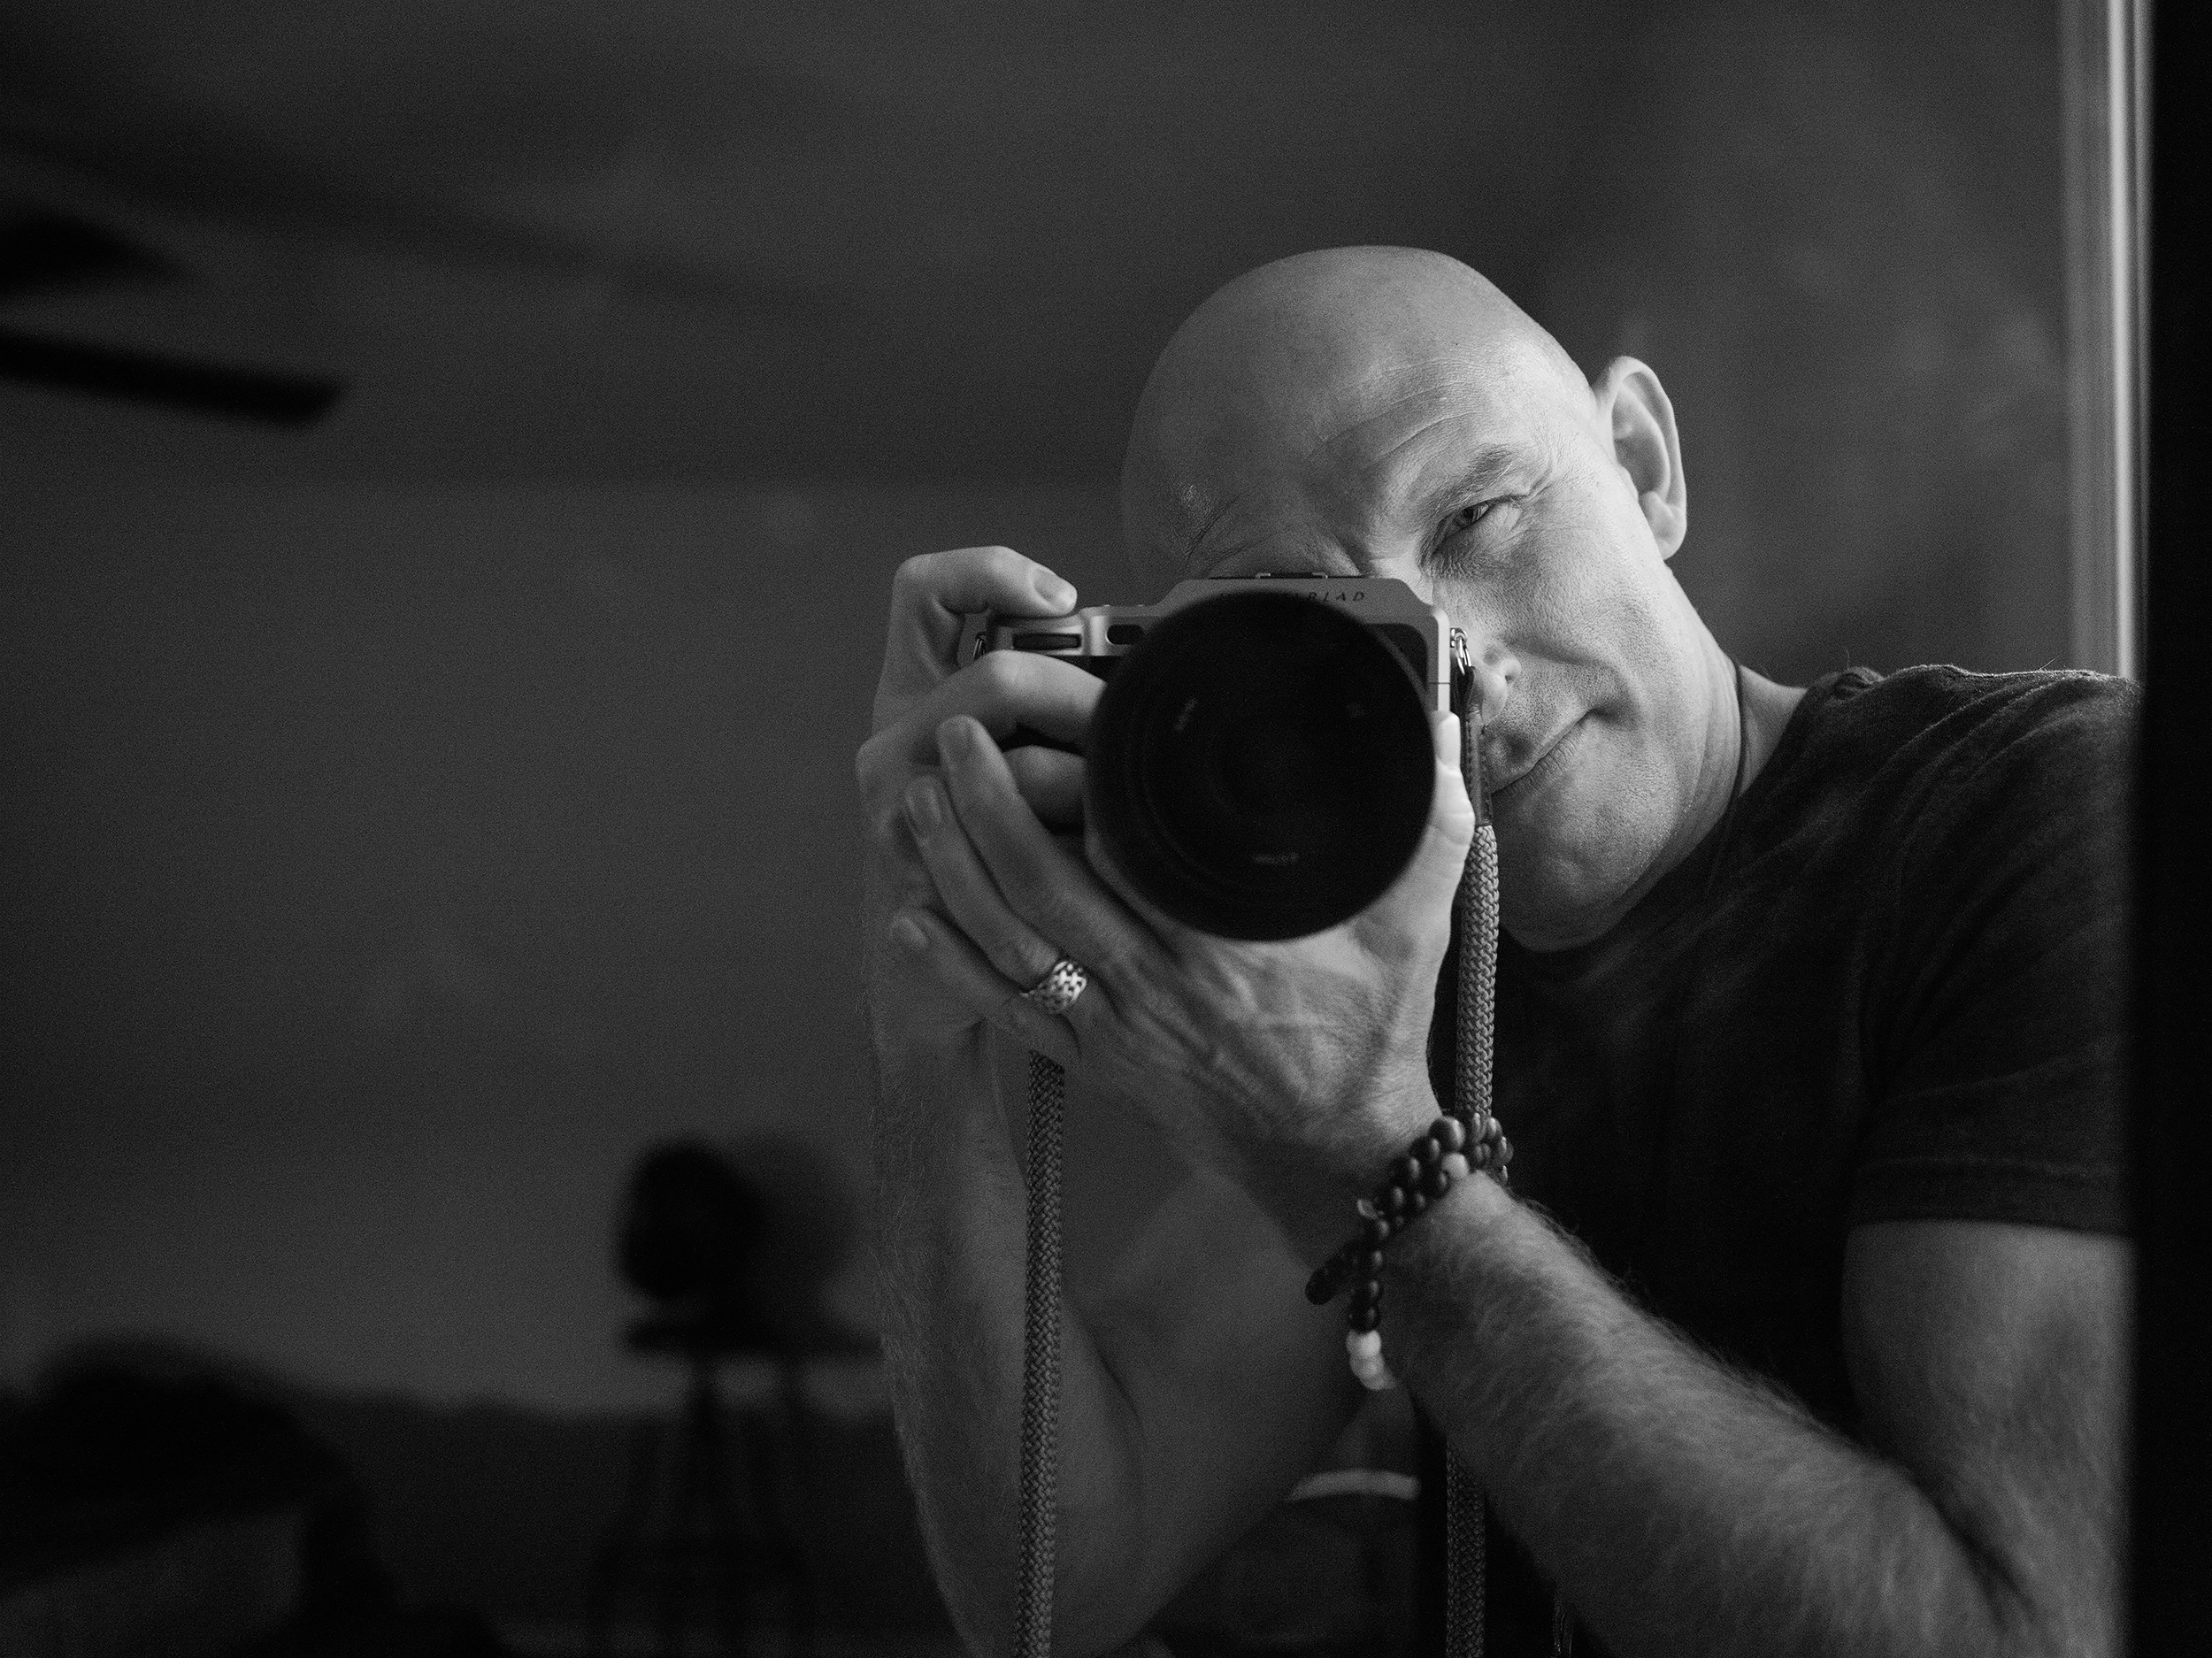 Hasselblad X1D Review Part 3  As a Walk Around Camera? By Steve Huff